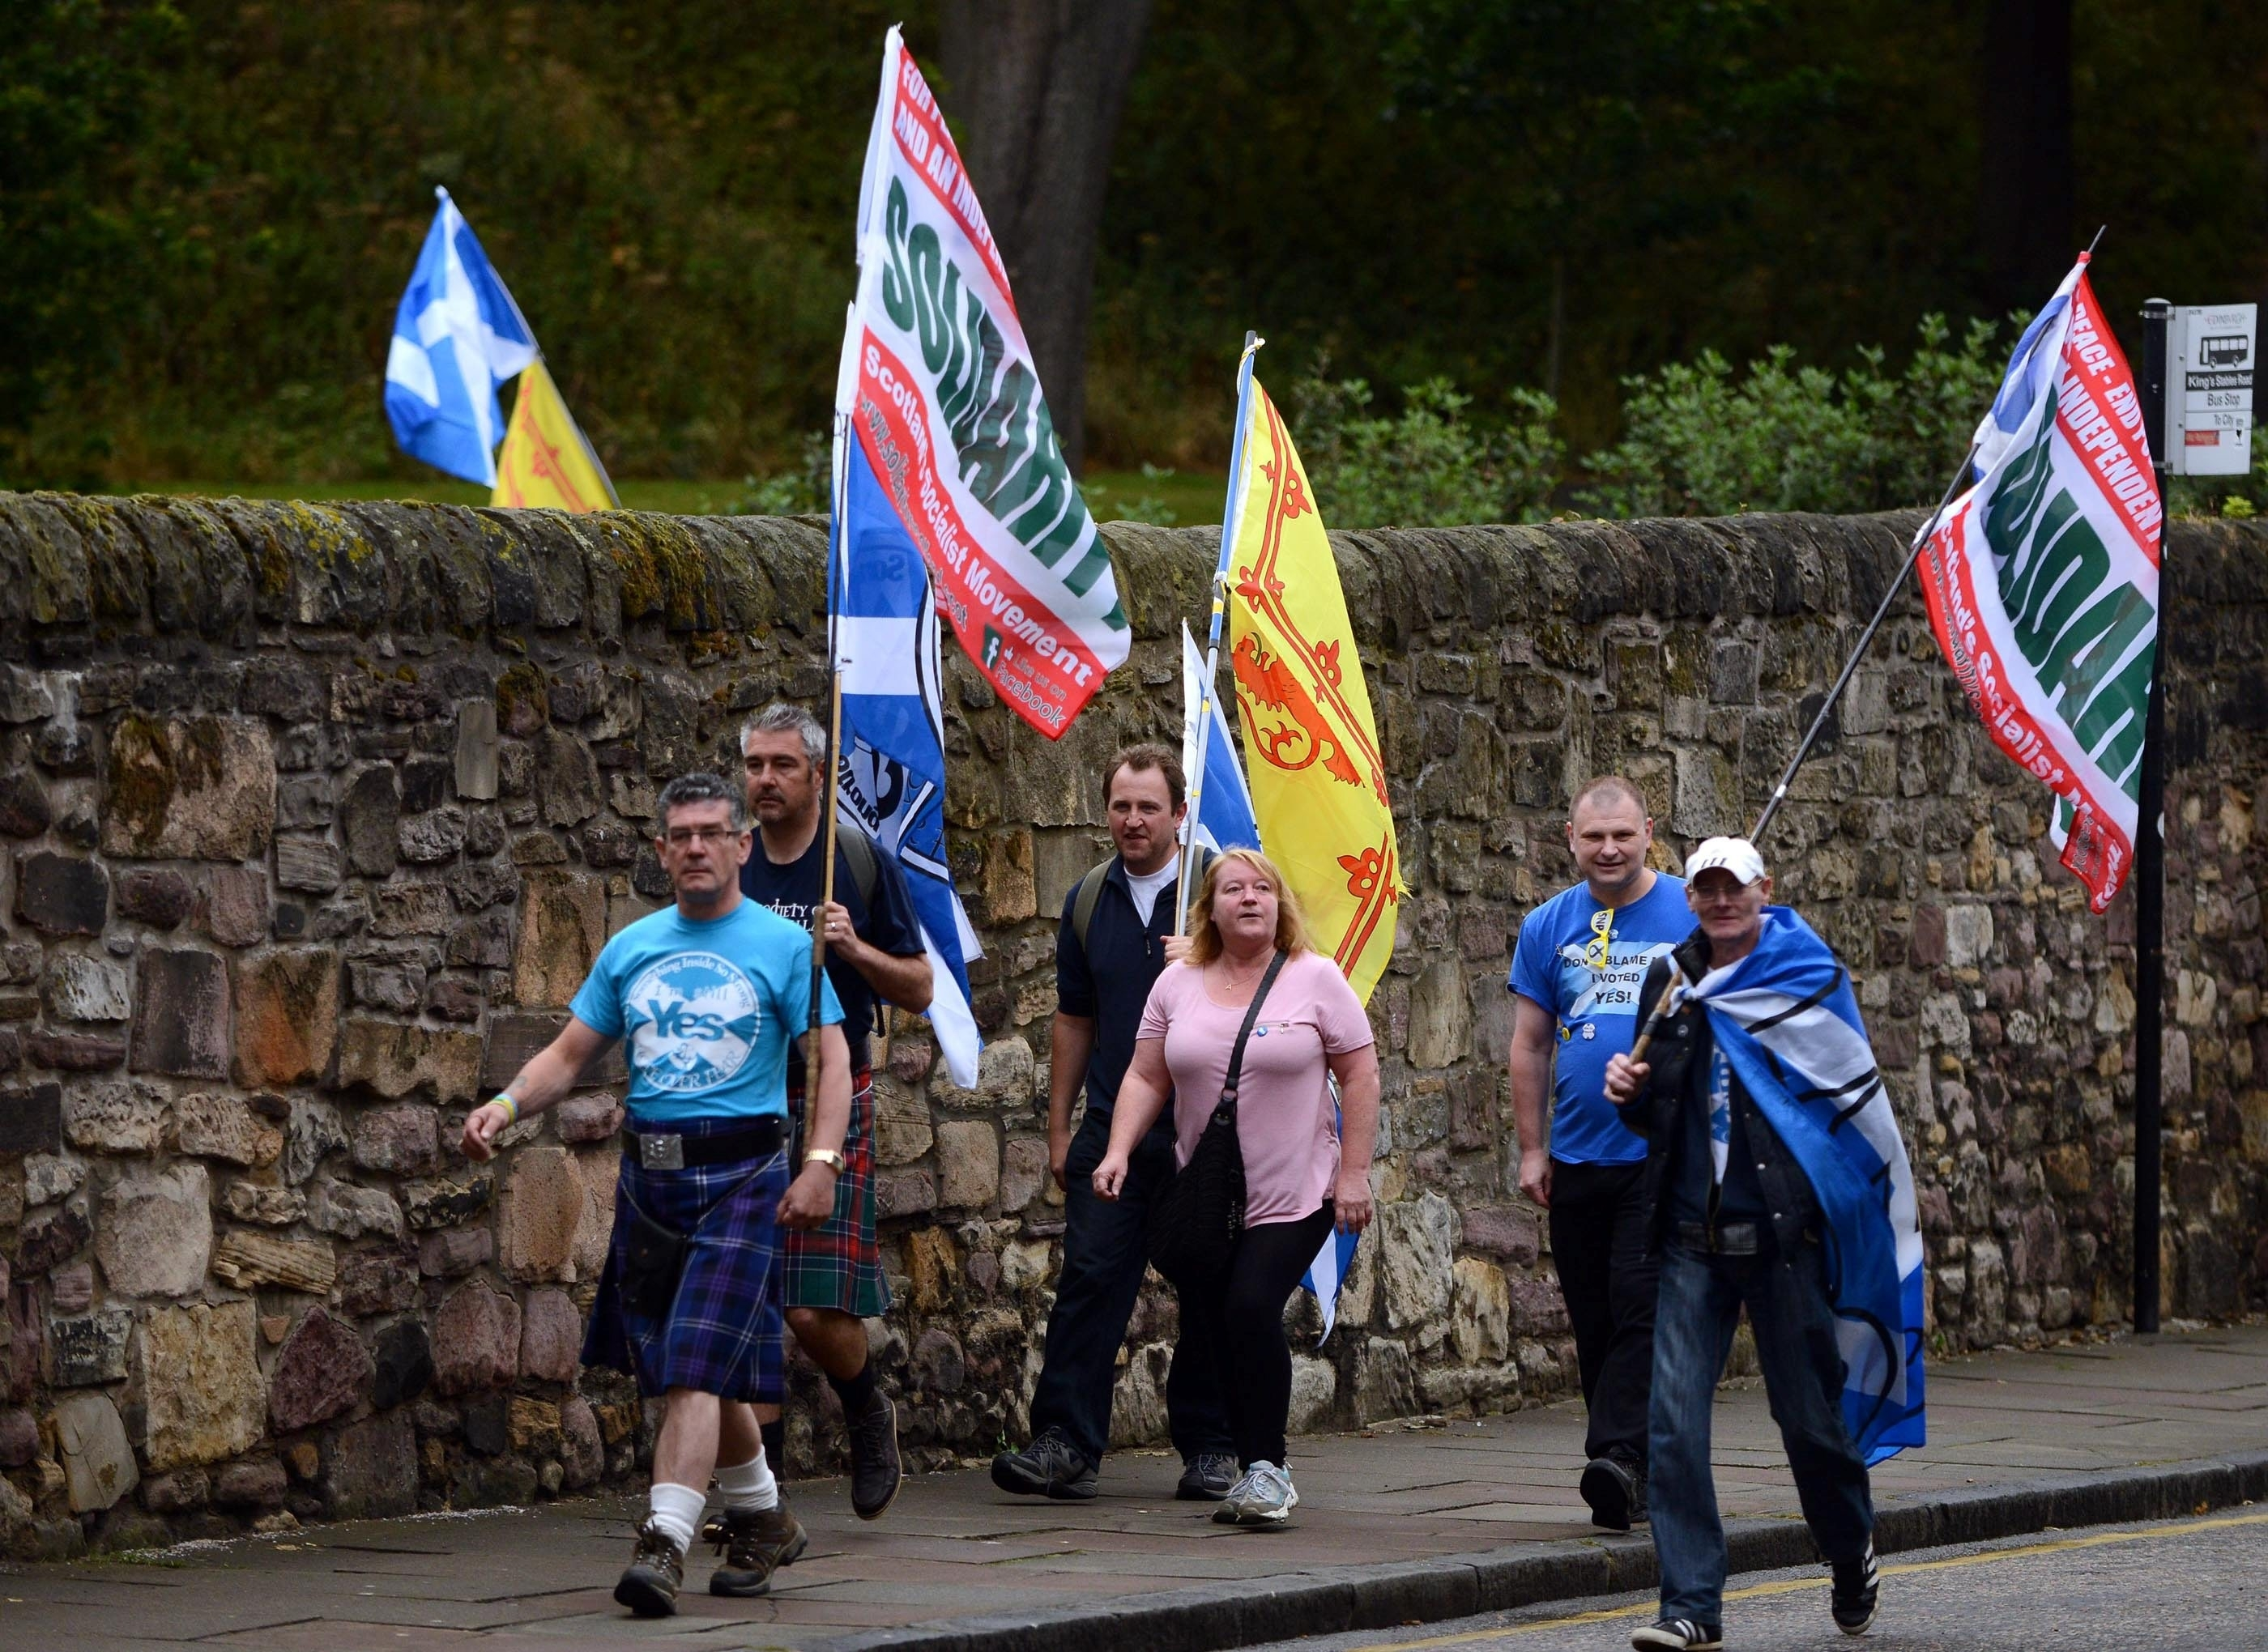 It wouldn't be the Yes movement without a few kilts